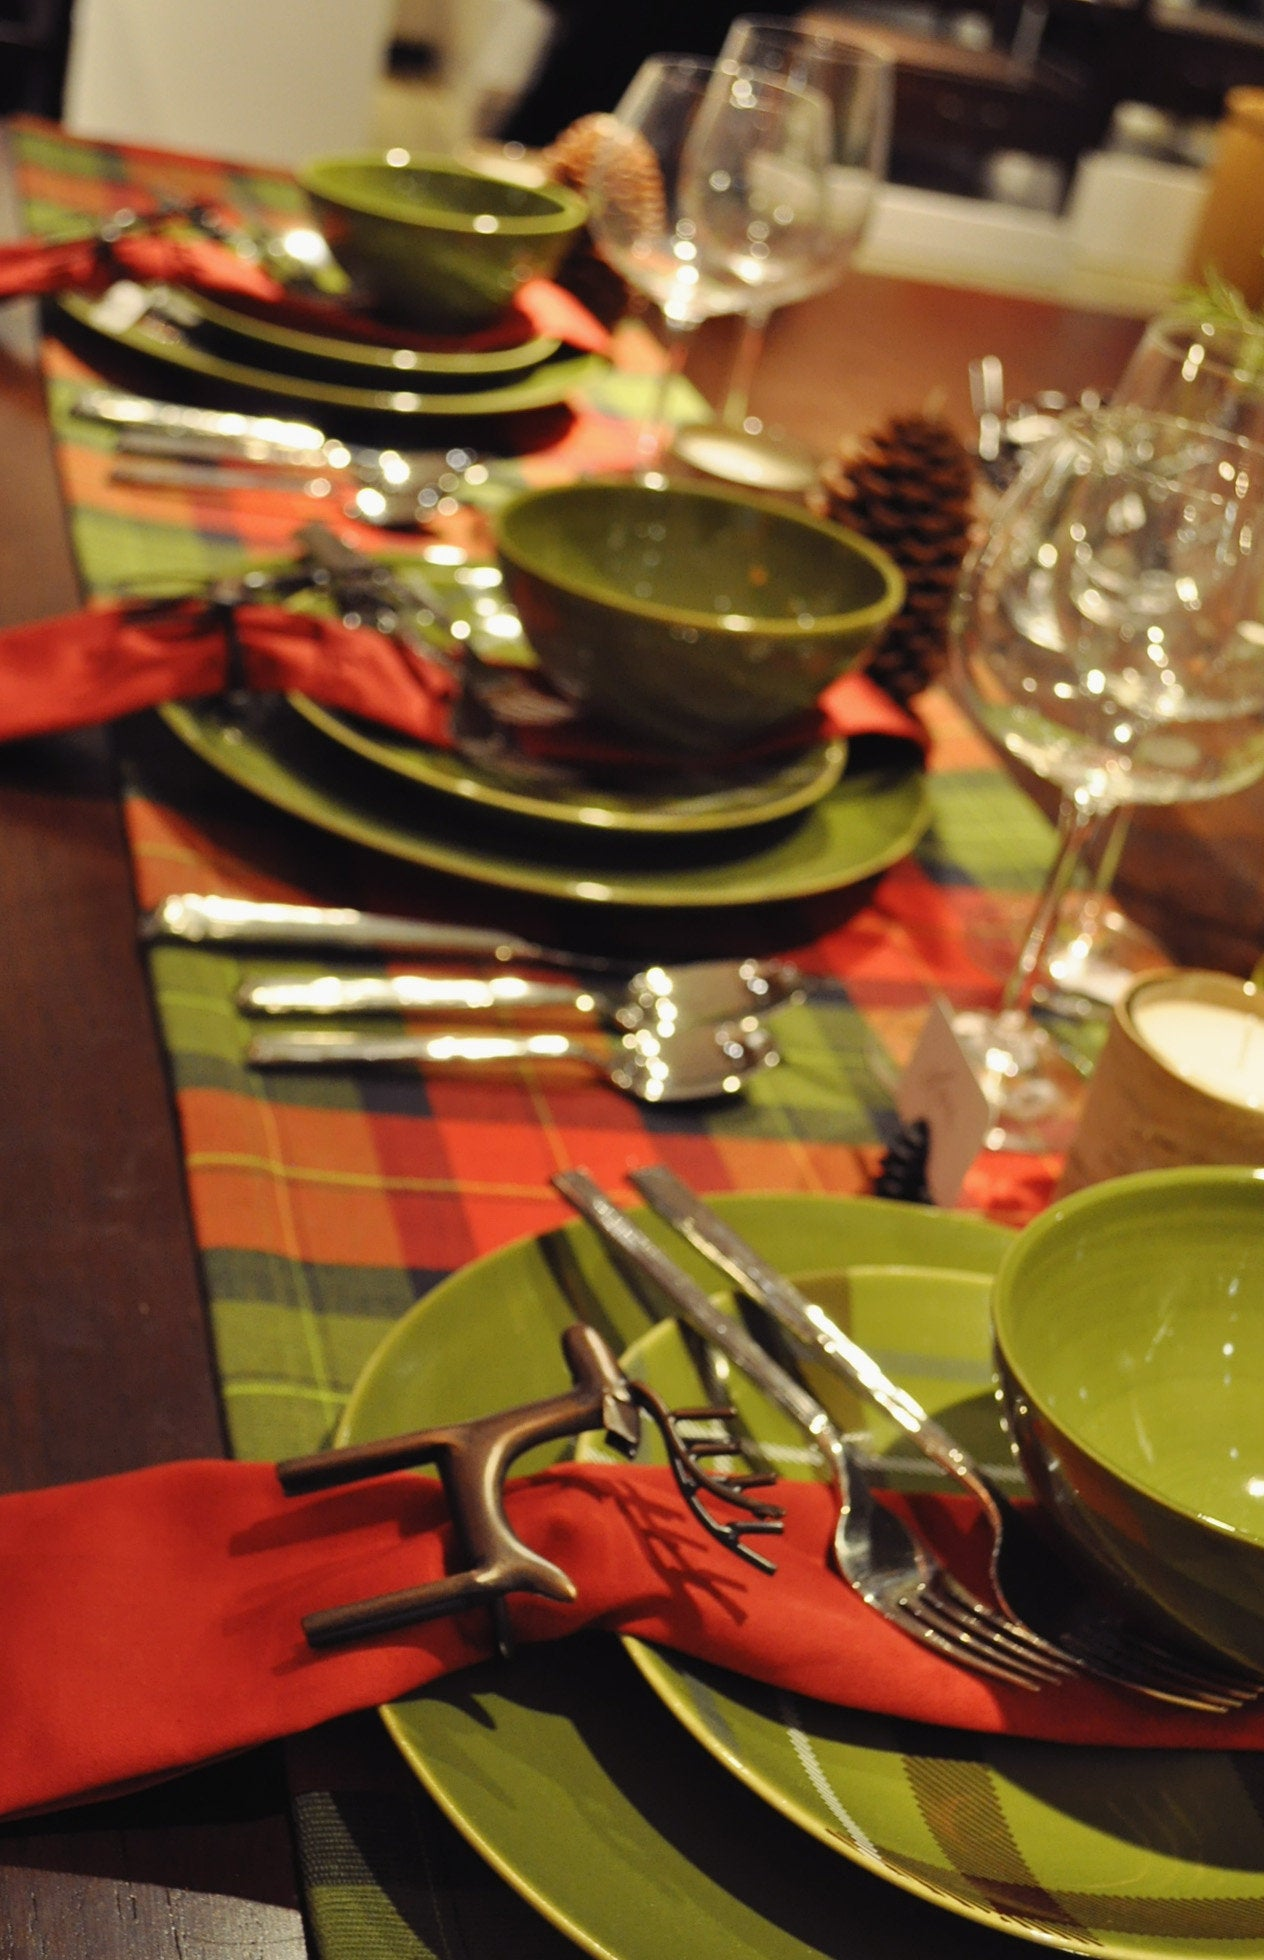 Table set with holiday decor